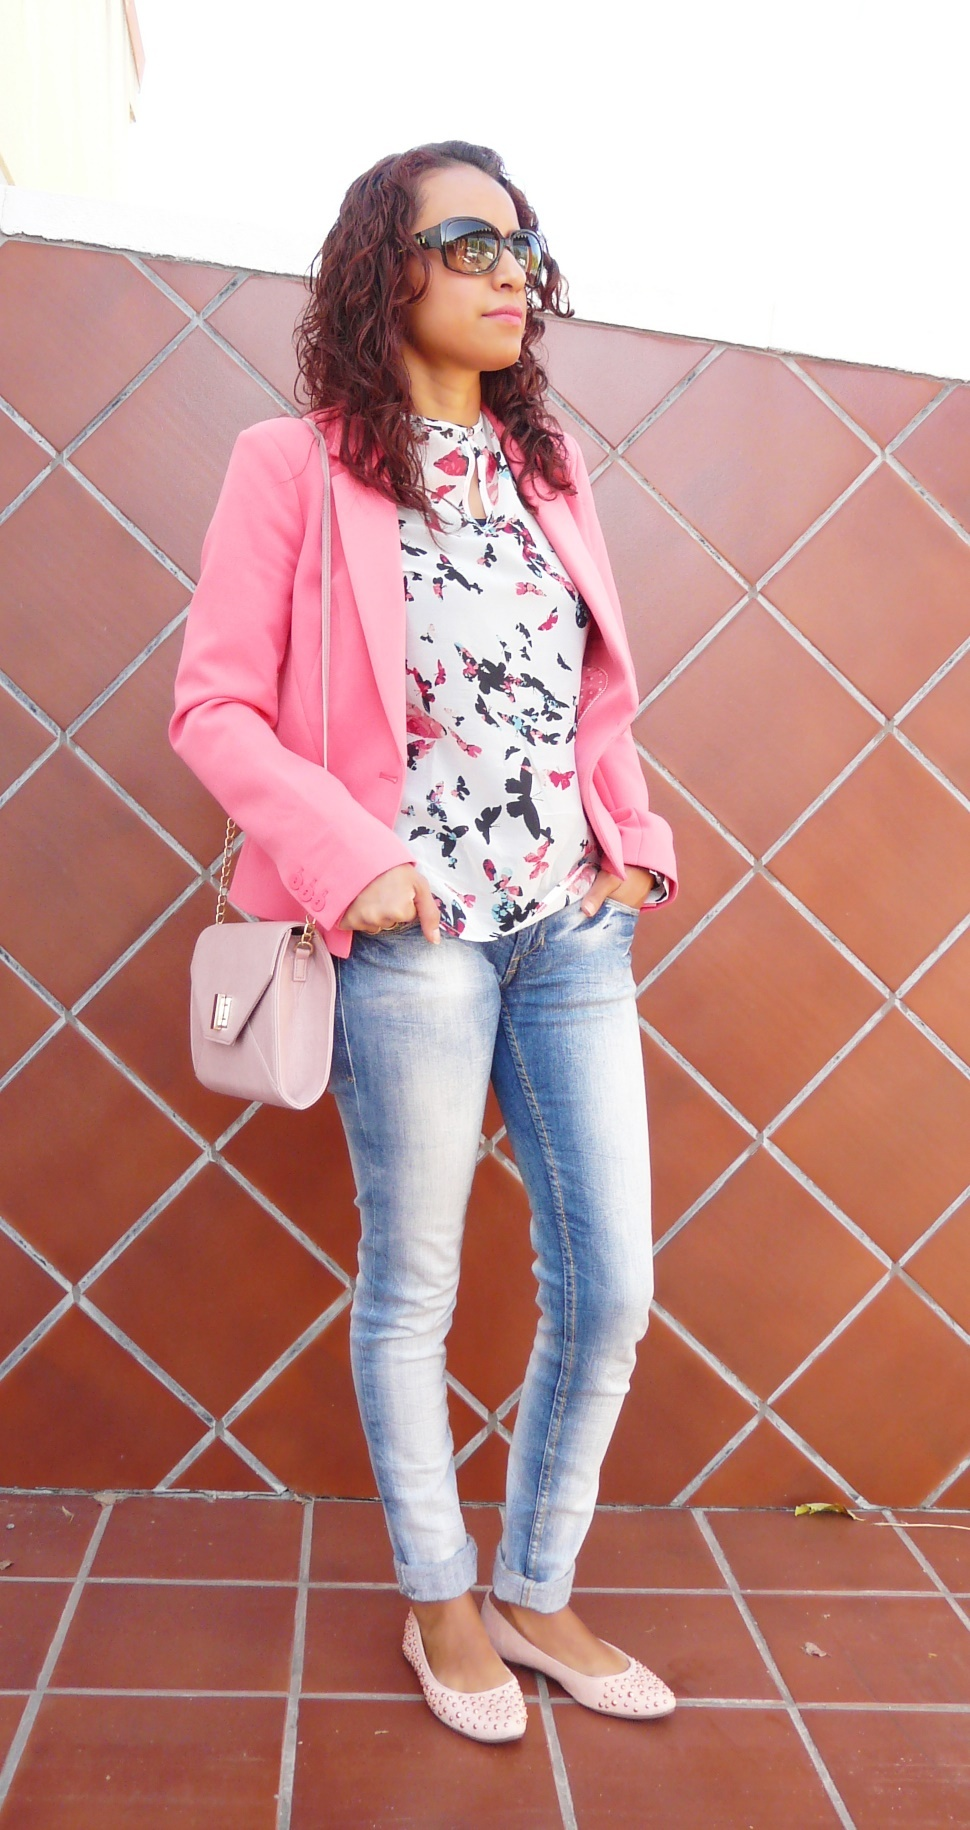 UN LOOK CASUAL CON JEANS